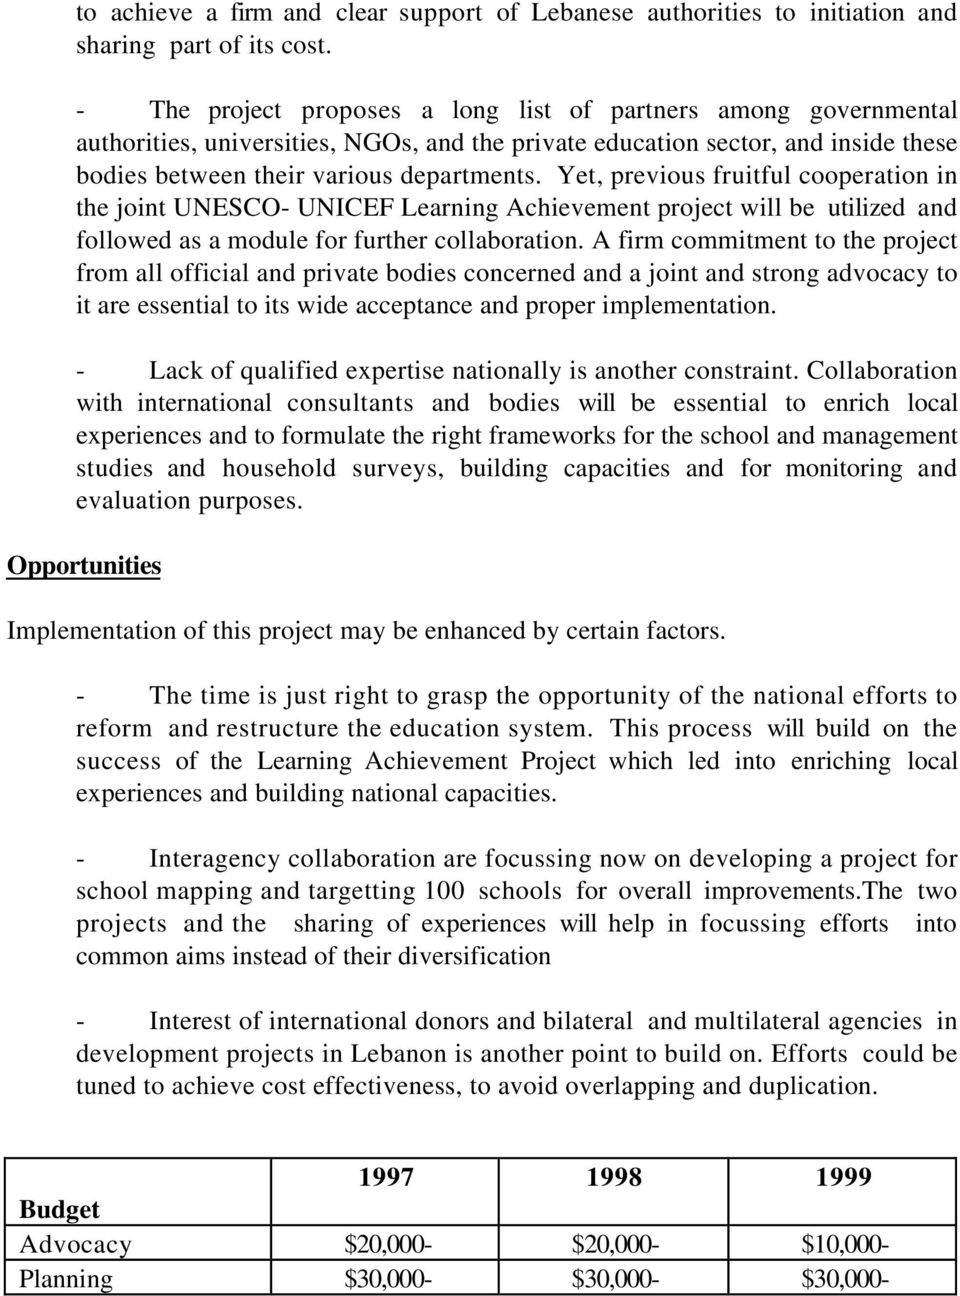 Yet, previous fruitful cooperation in the joint UNESCO- UNICEF Learning Achievement project will be utilized and followed as a module for further collaboration.